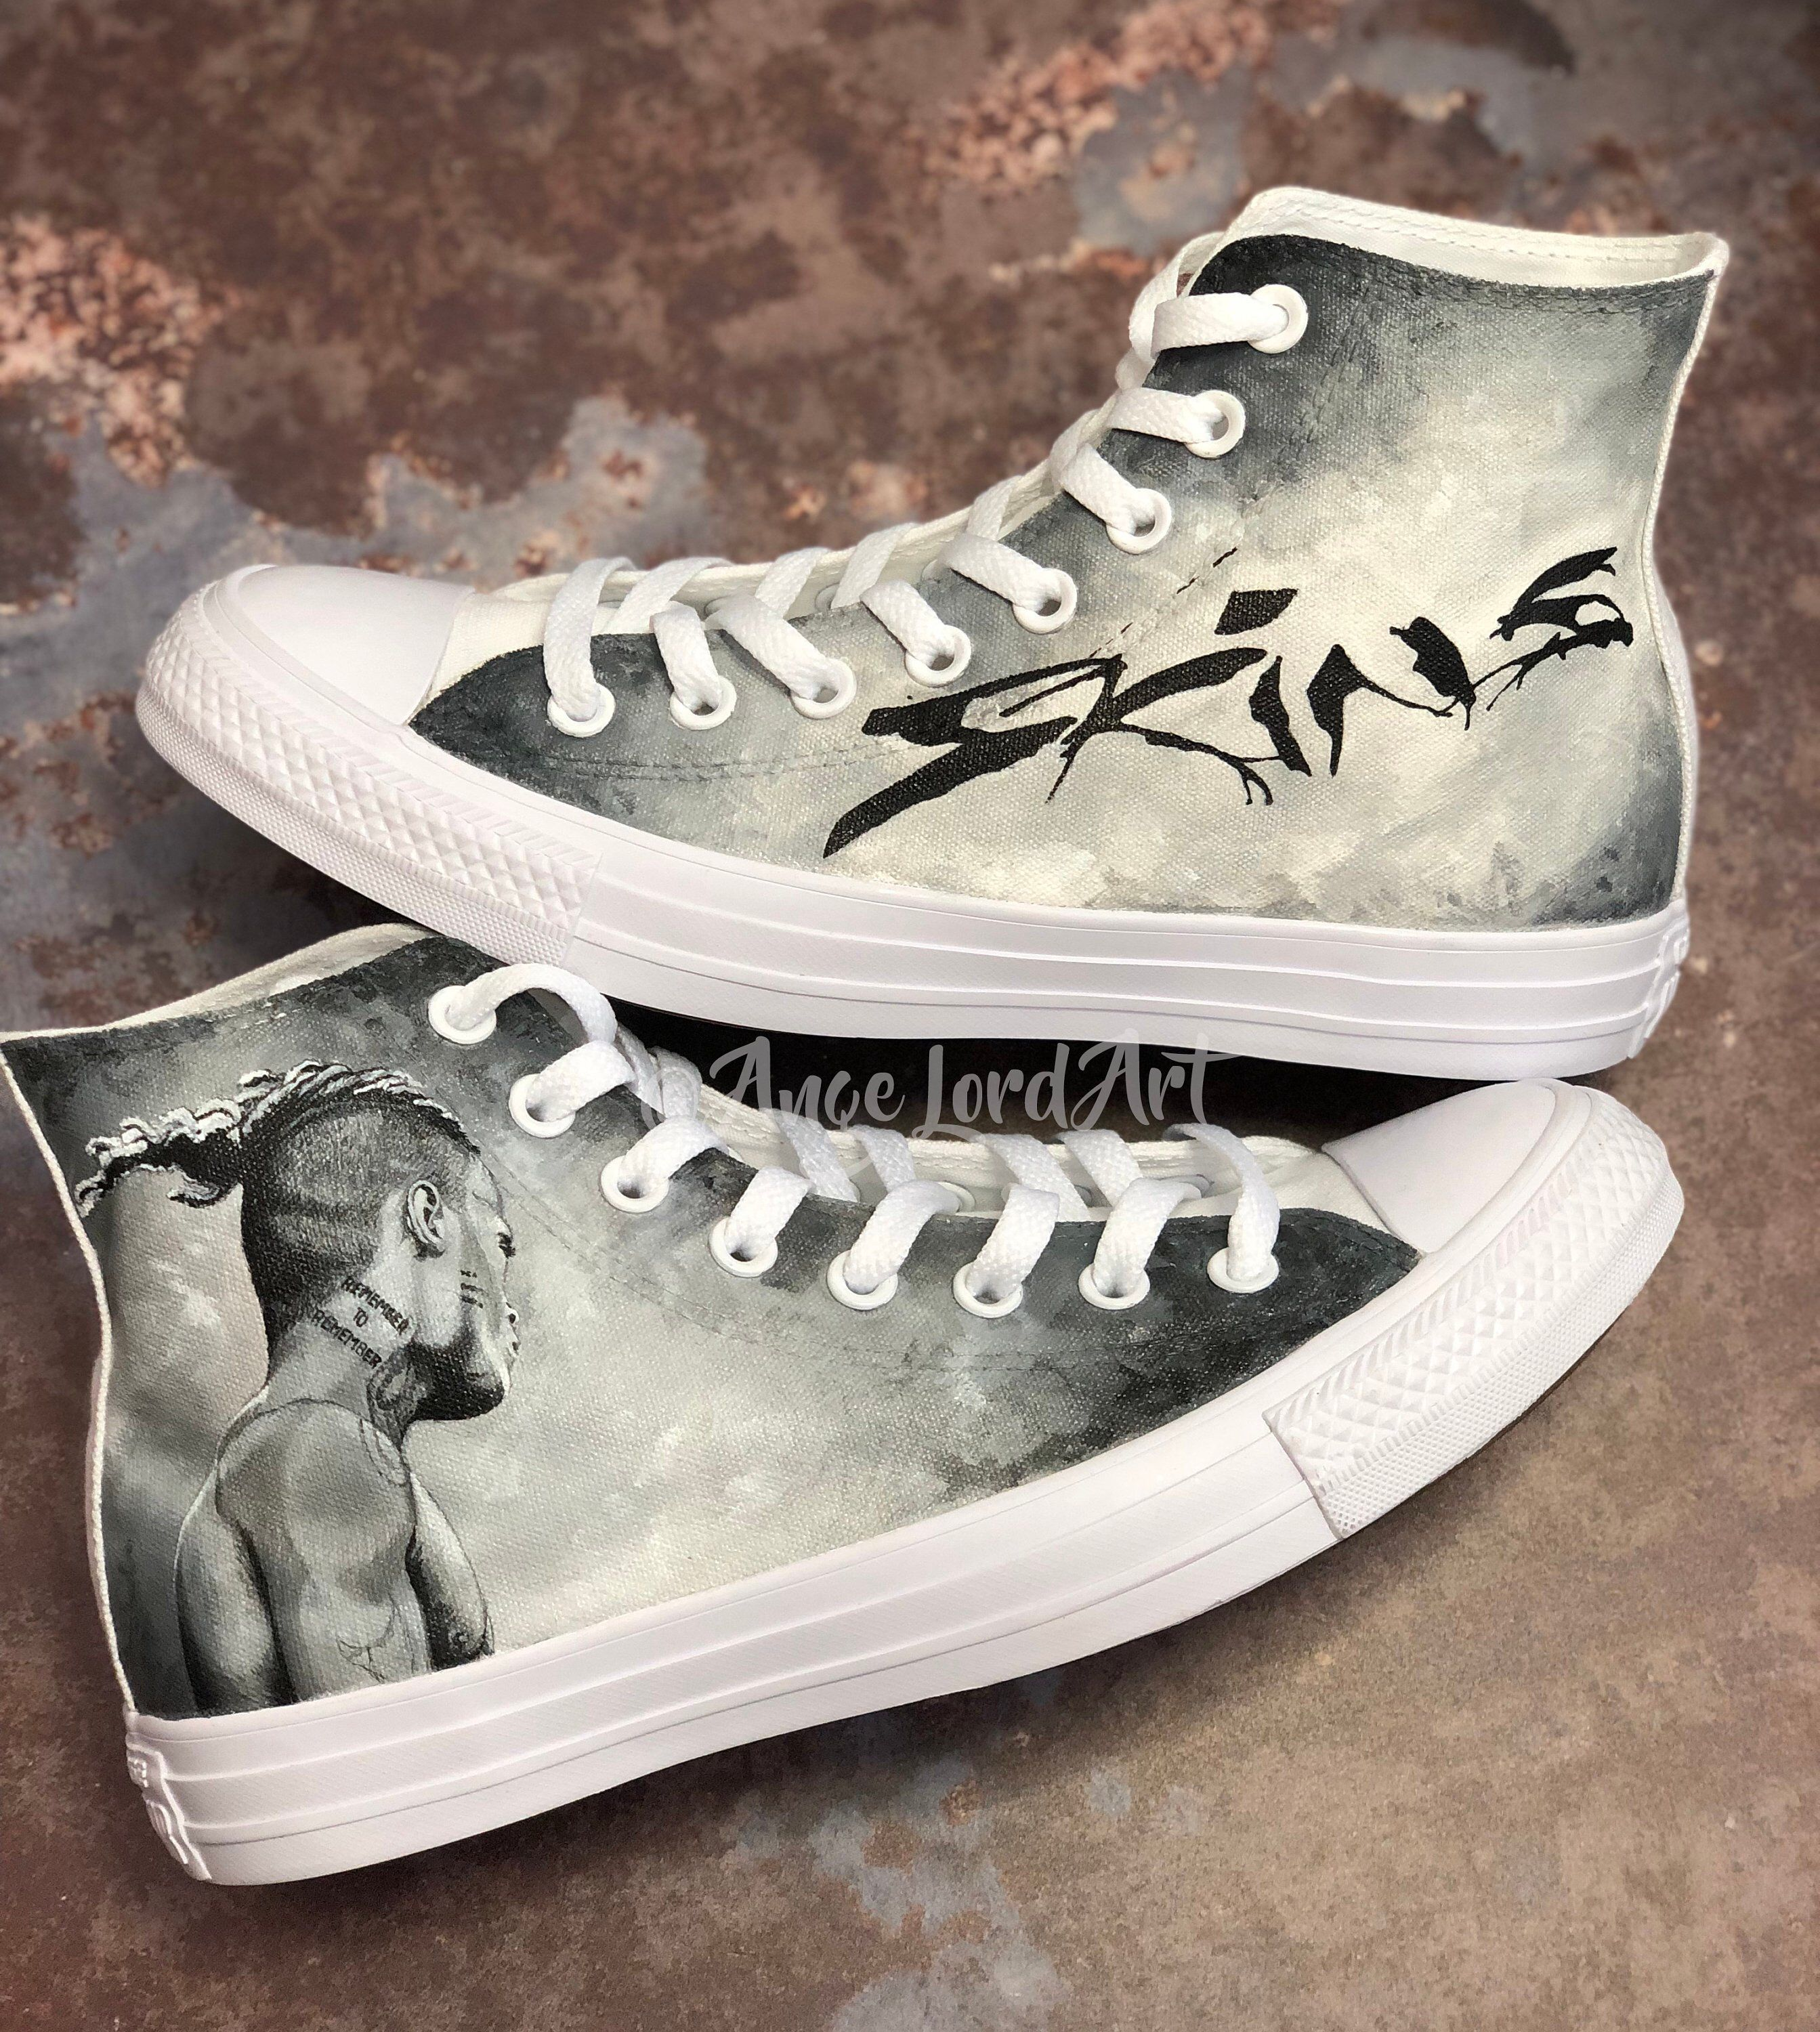 c0f5c9a6cf23 Excited to share this item from my  etsy shop  Custom Painted XXXTentacion  Skins Tribute inspired Converse Hi Tops Vans shoes sneakers. Custom shoes Advance  ...